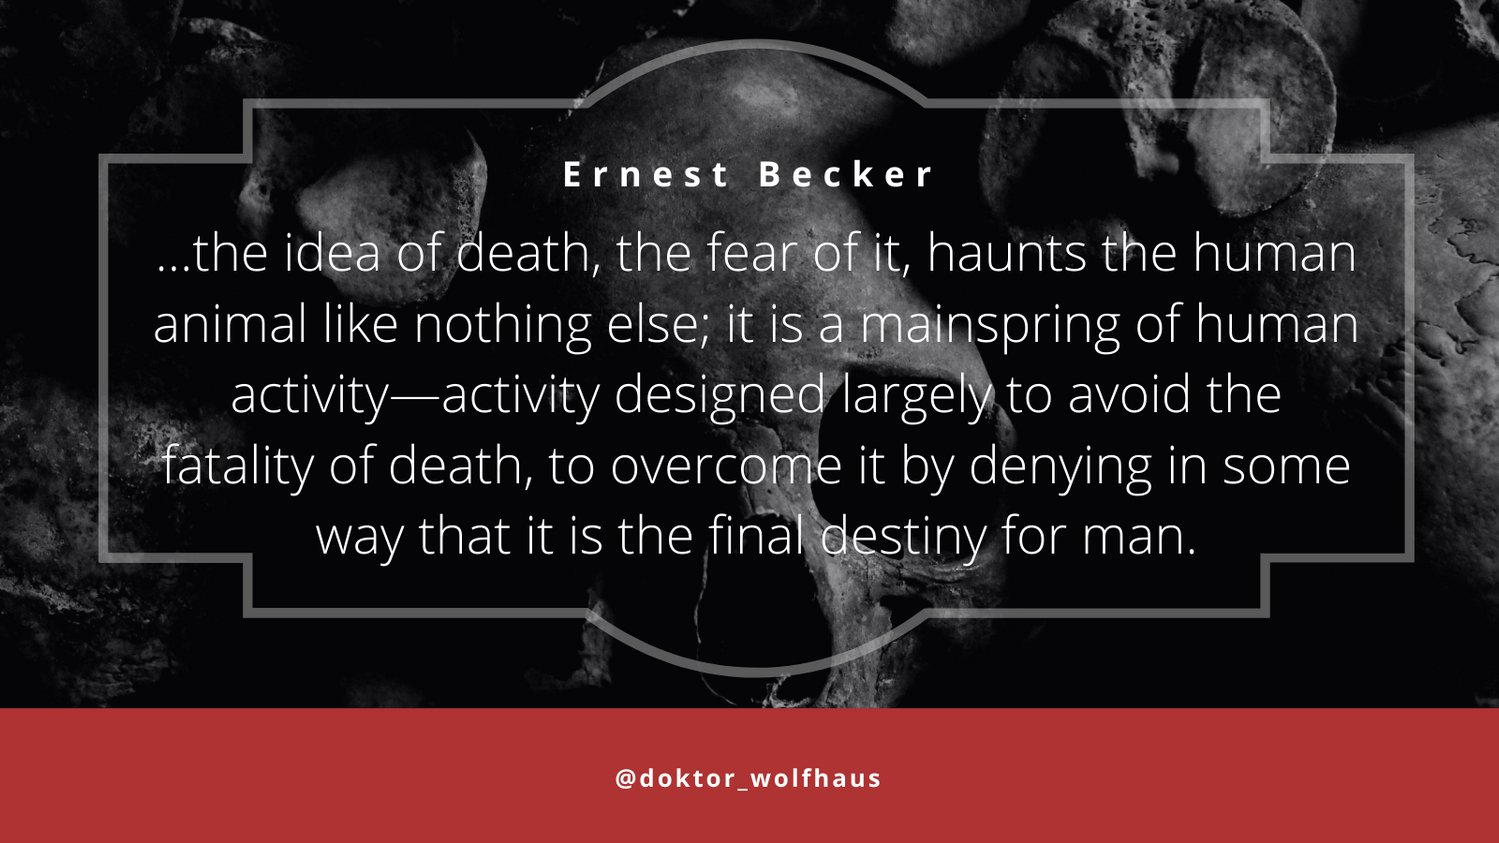 …the idea of death, the fear of it, haunts the human animal like nothing else… Ernest Becker [OS][1499×843]